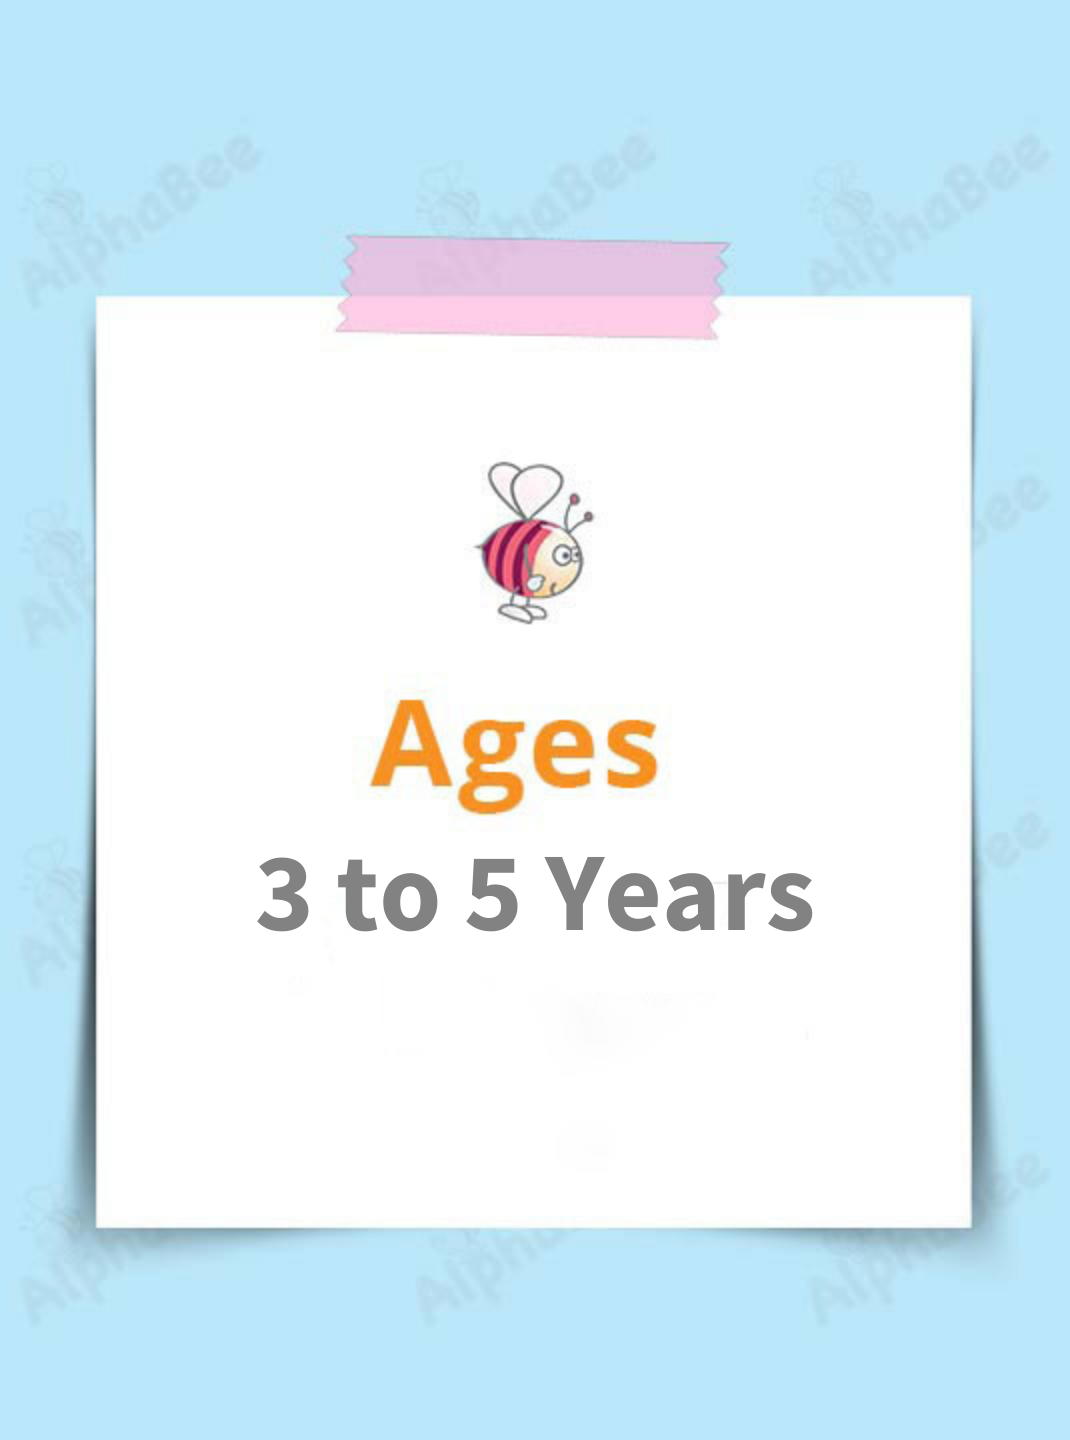 Ages 3-5 Years